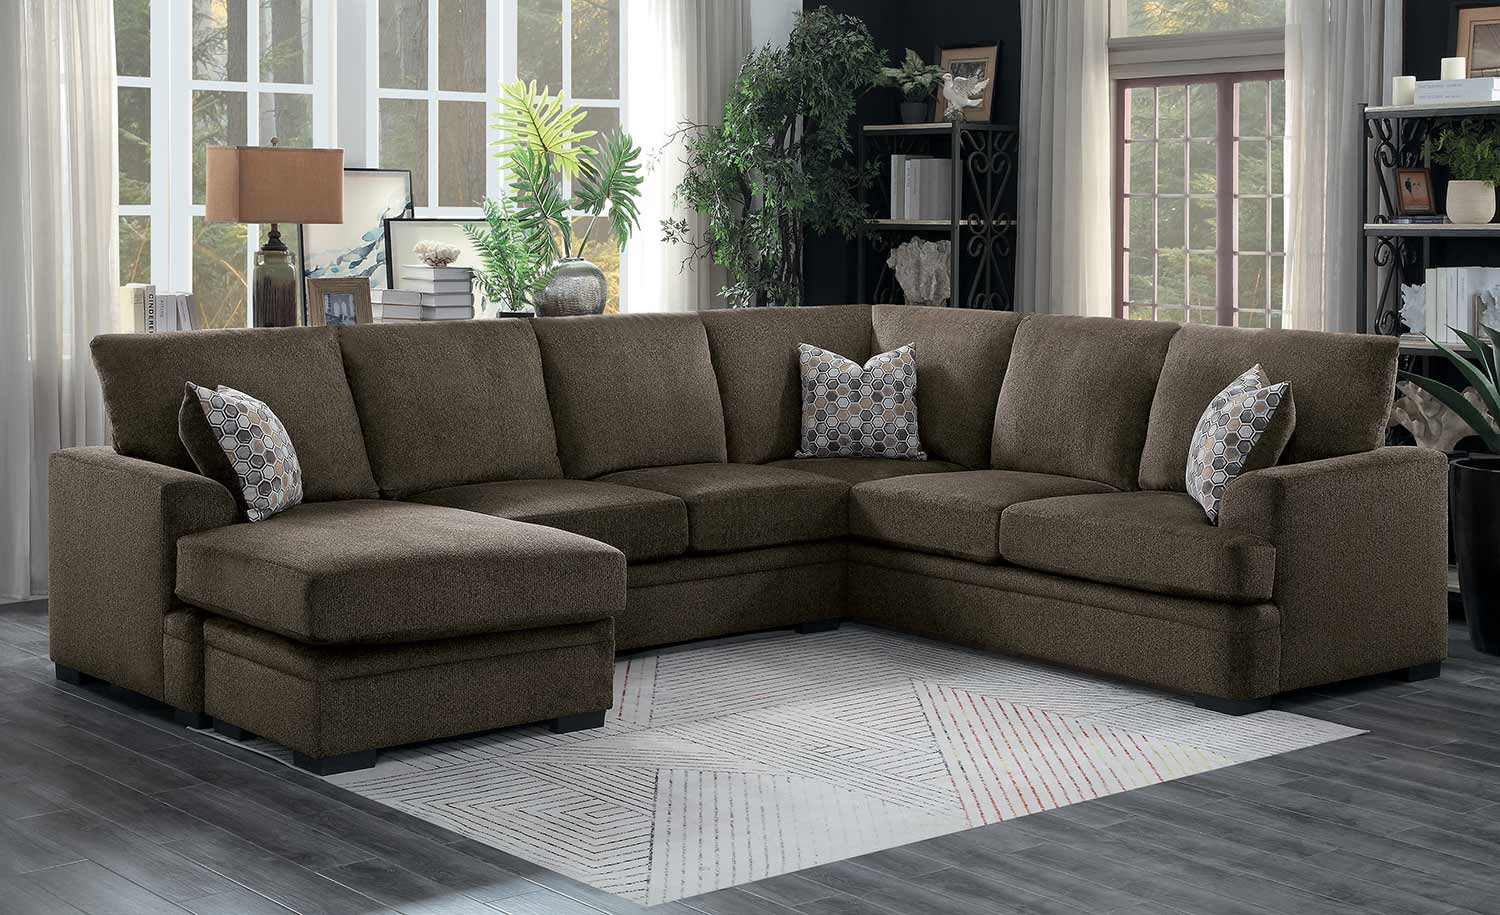 homelegance maddy sectional sofa set brown